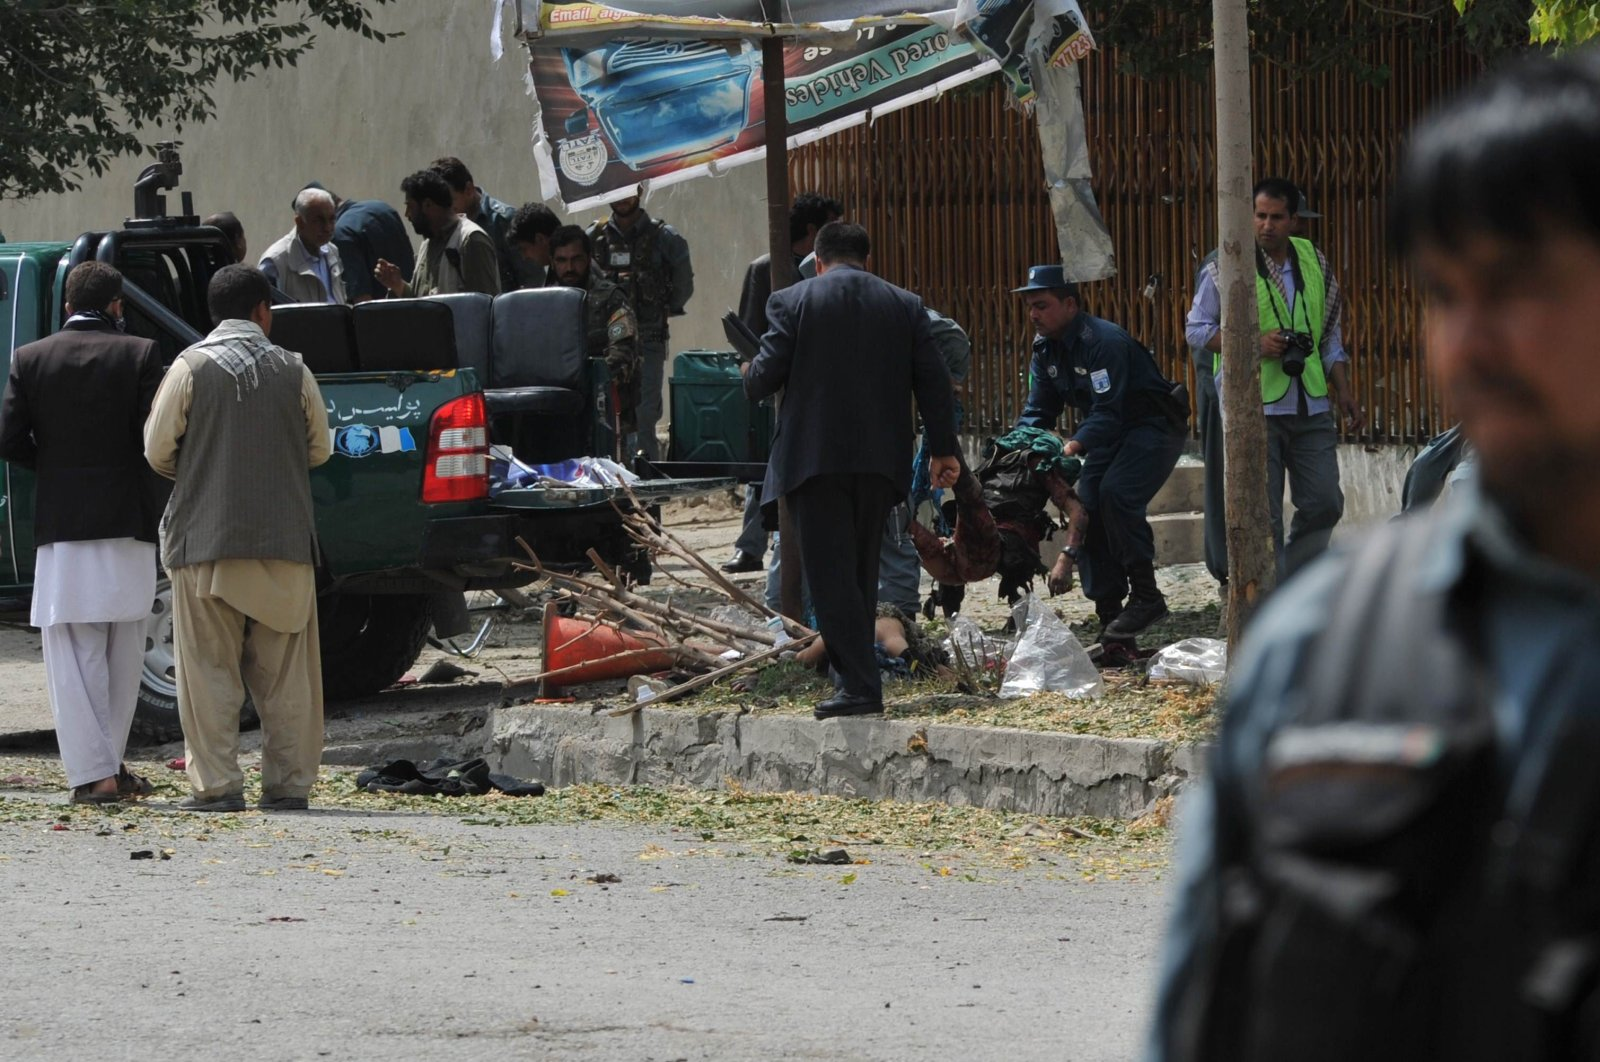 Afghan police carry the remains of a suicide attack victim in the city's diplomatic quarters, home to many Western embassies, in Kabul on Sept. 8, 2012. (AFP Photo)